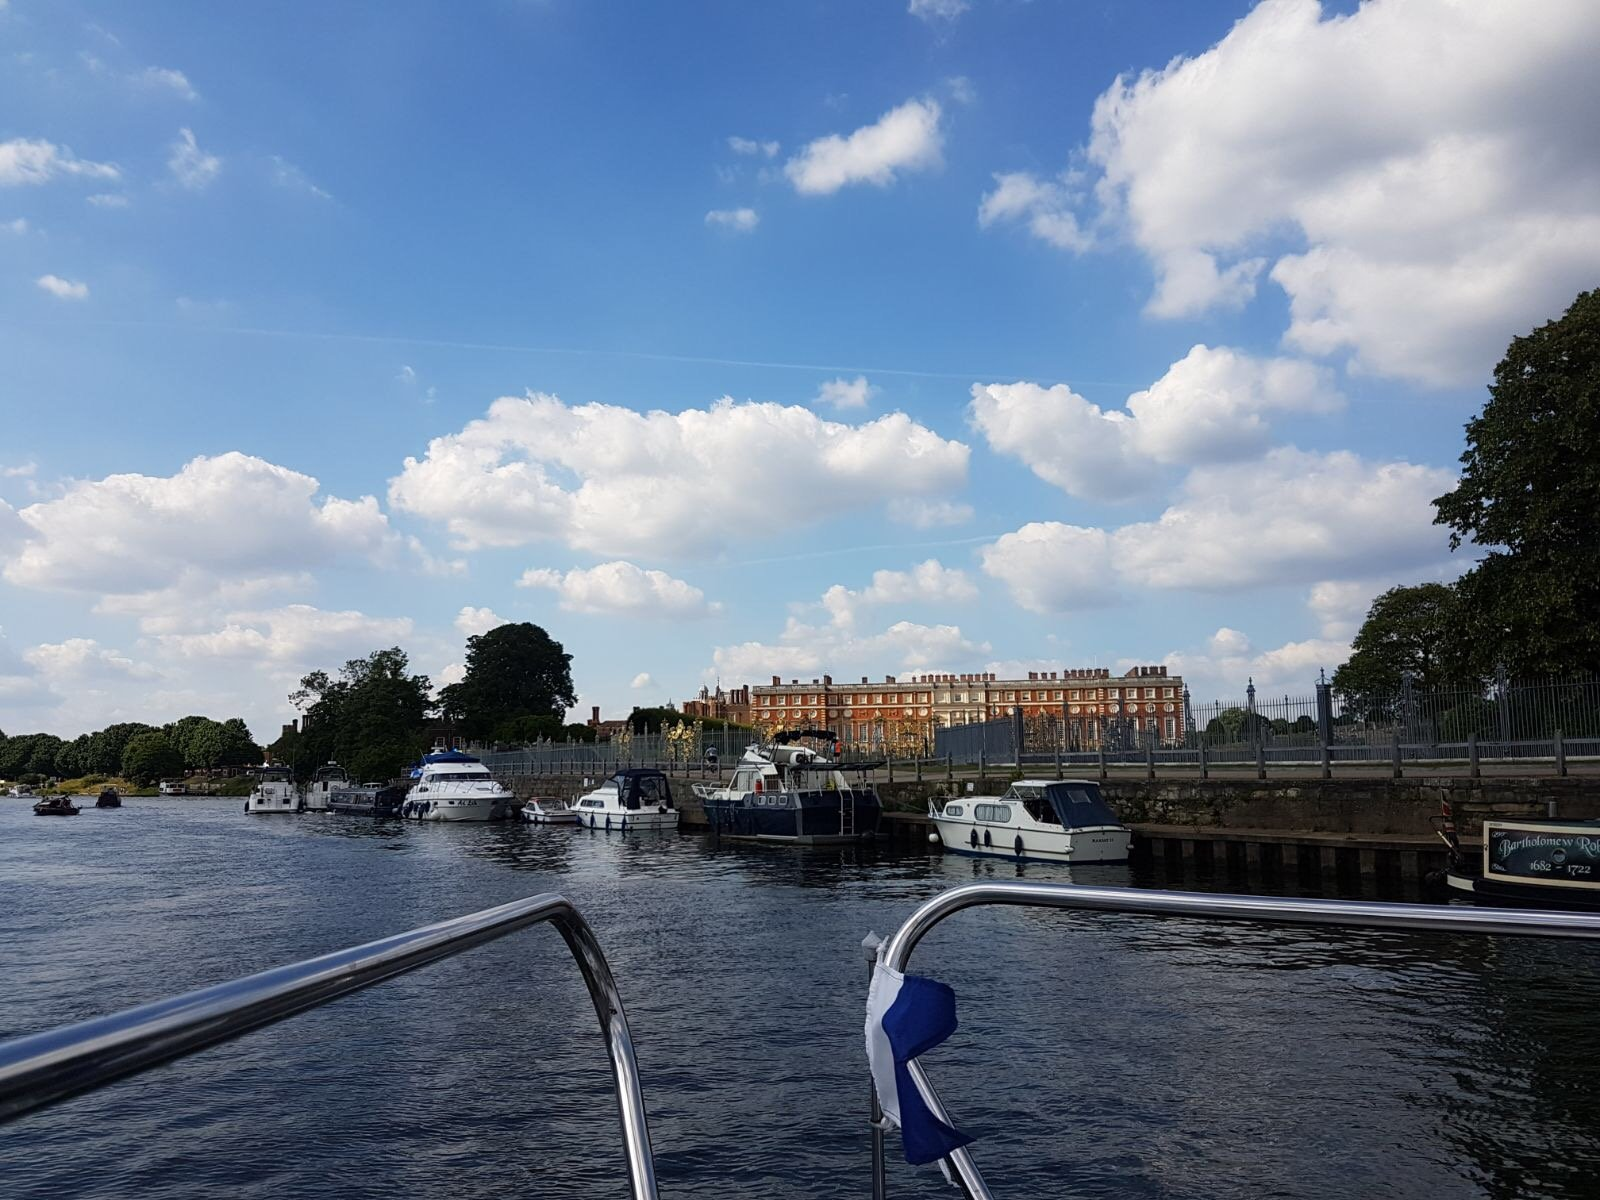 Visit Hampton Court Palace by boat